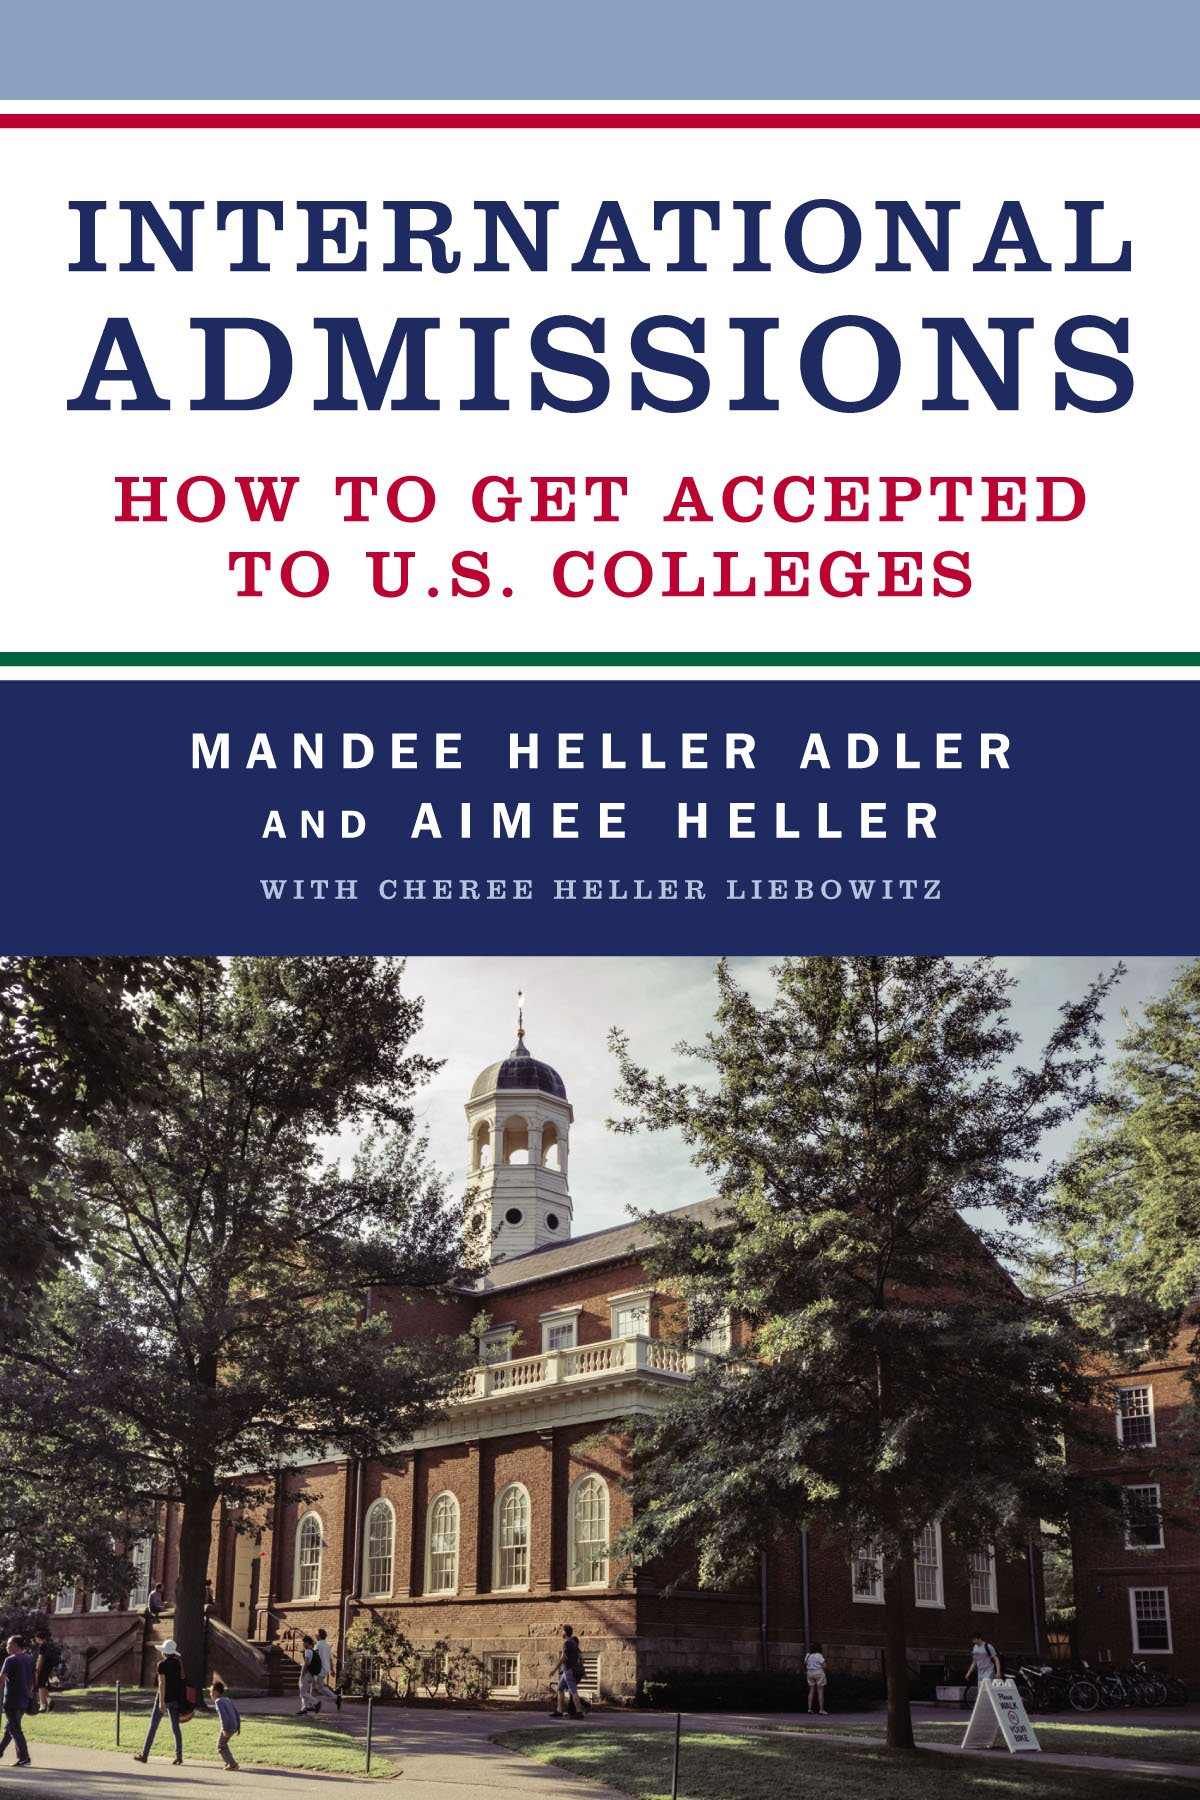 International Admissions by Mandee Heller Adler and Aimee Heller